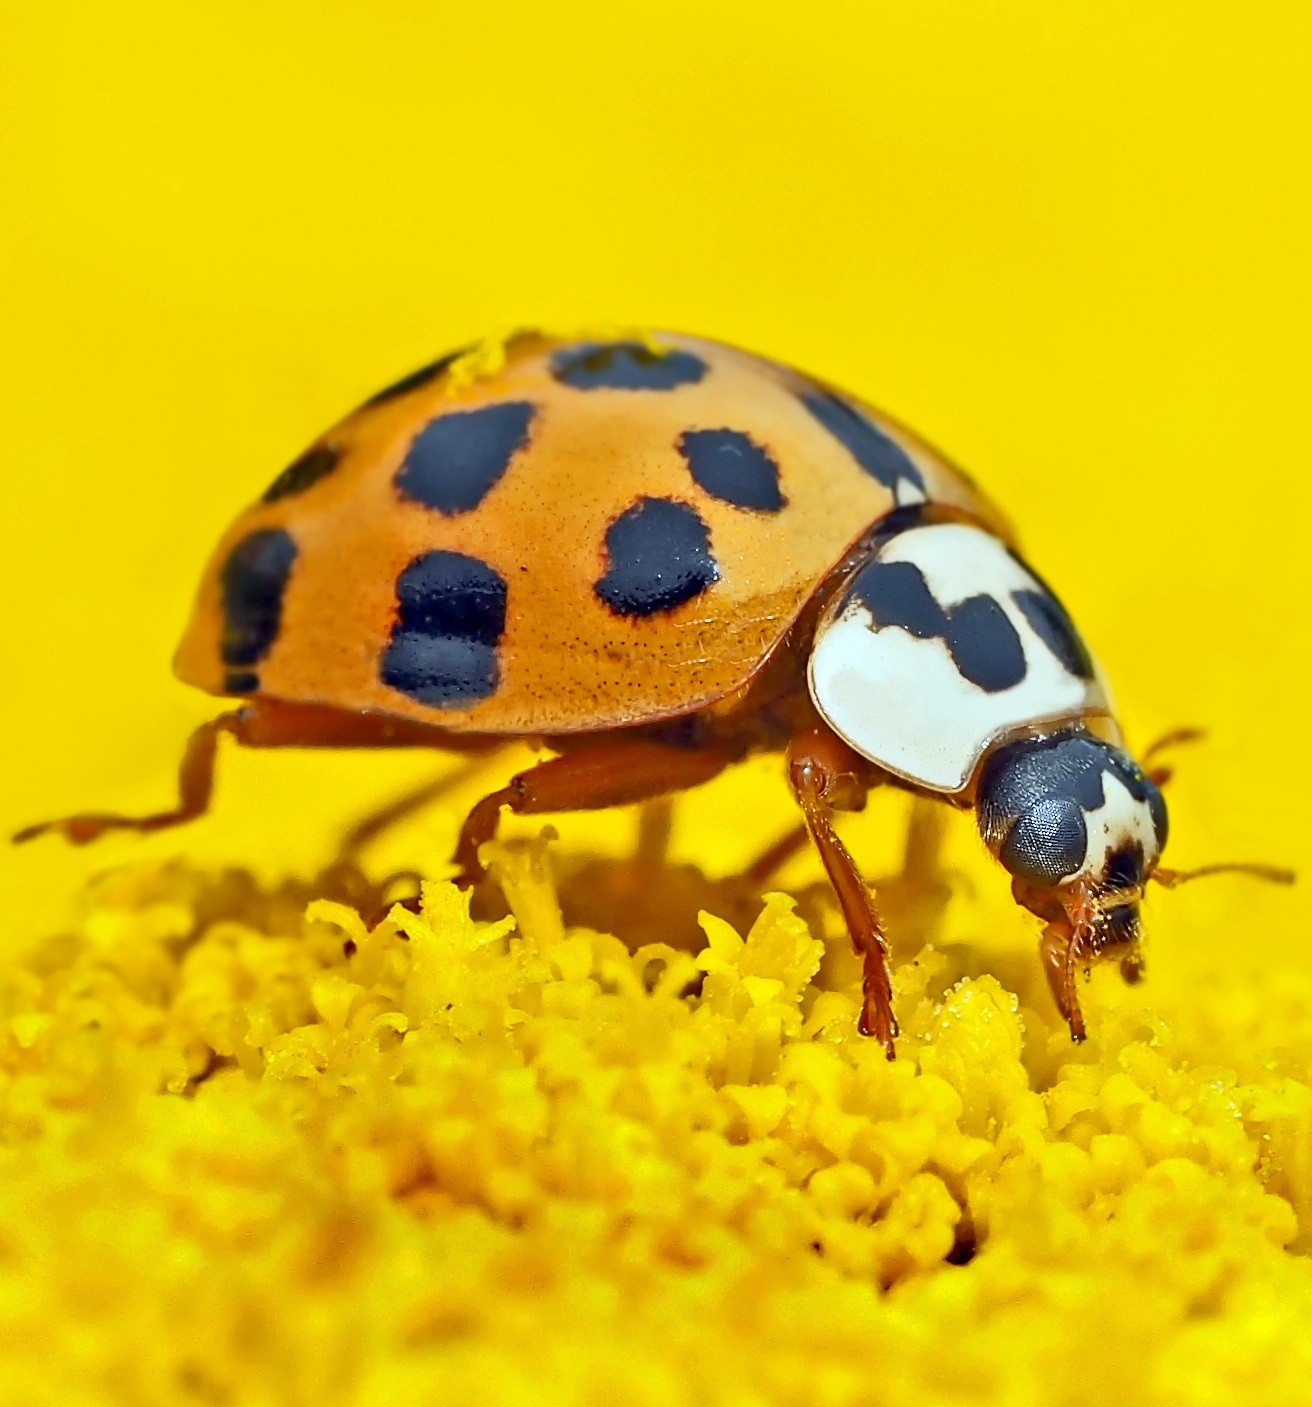 Up close photo of ladybug.